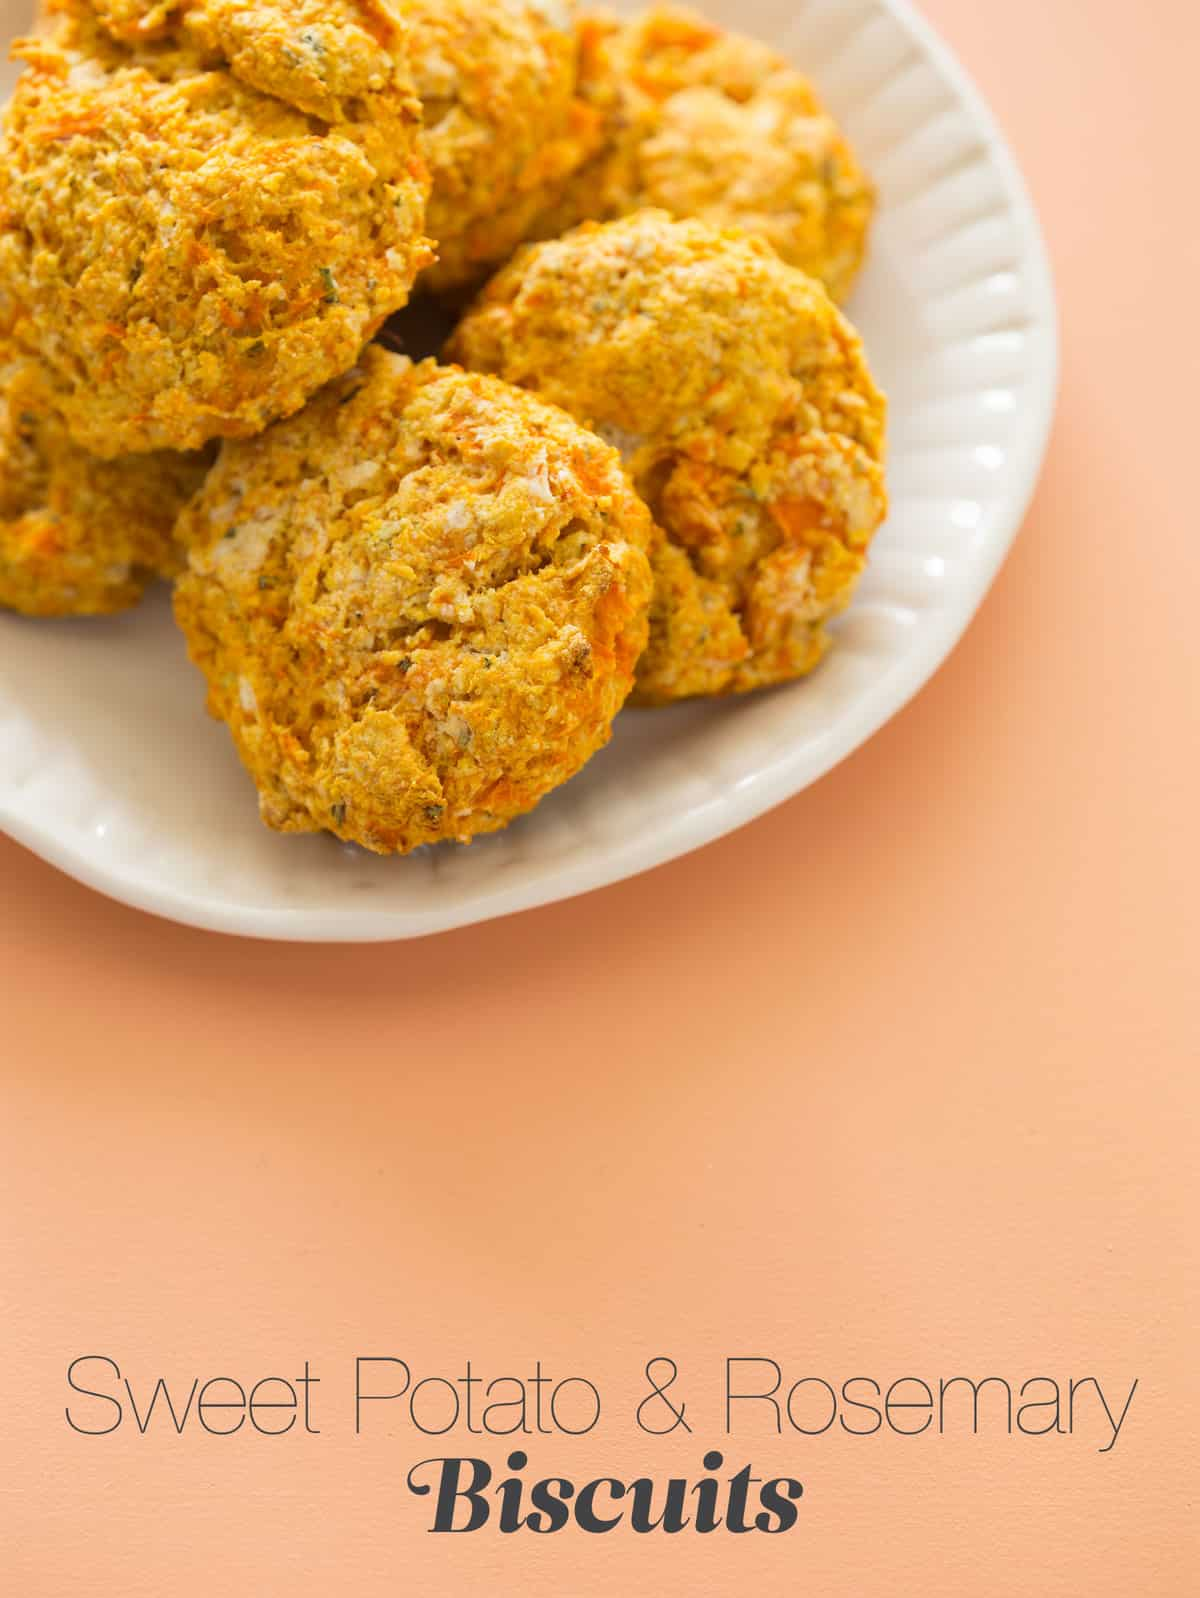 Sweet Potato & Rosemary Biscuits | Spoon Fork Bacon